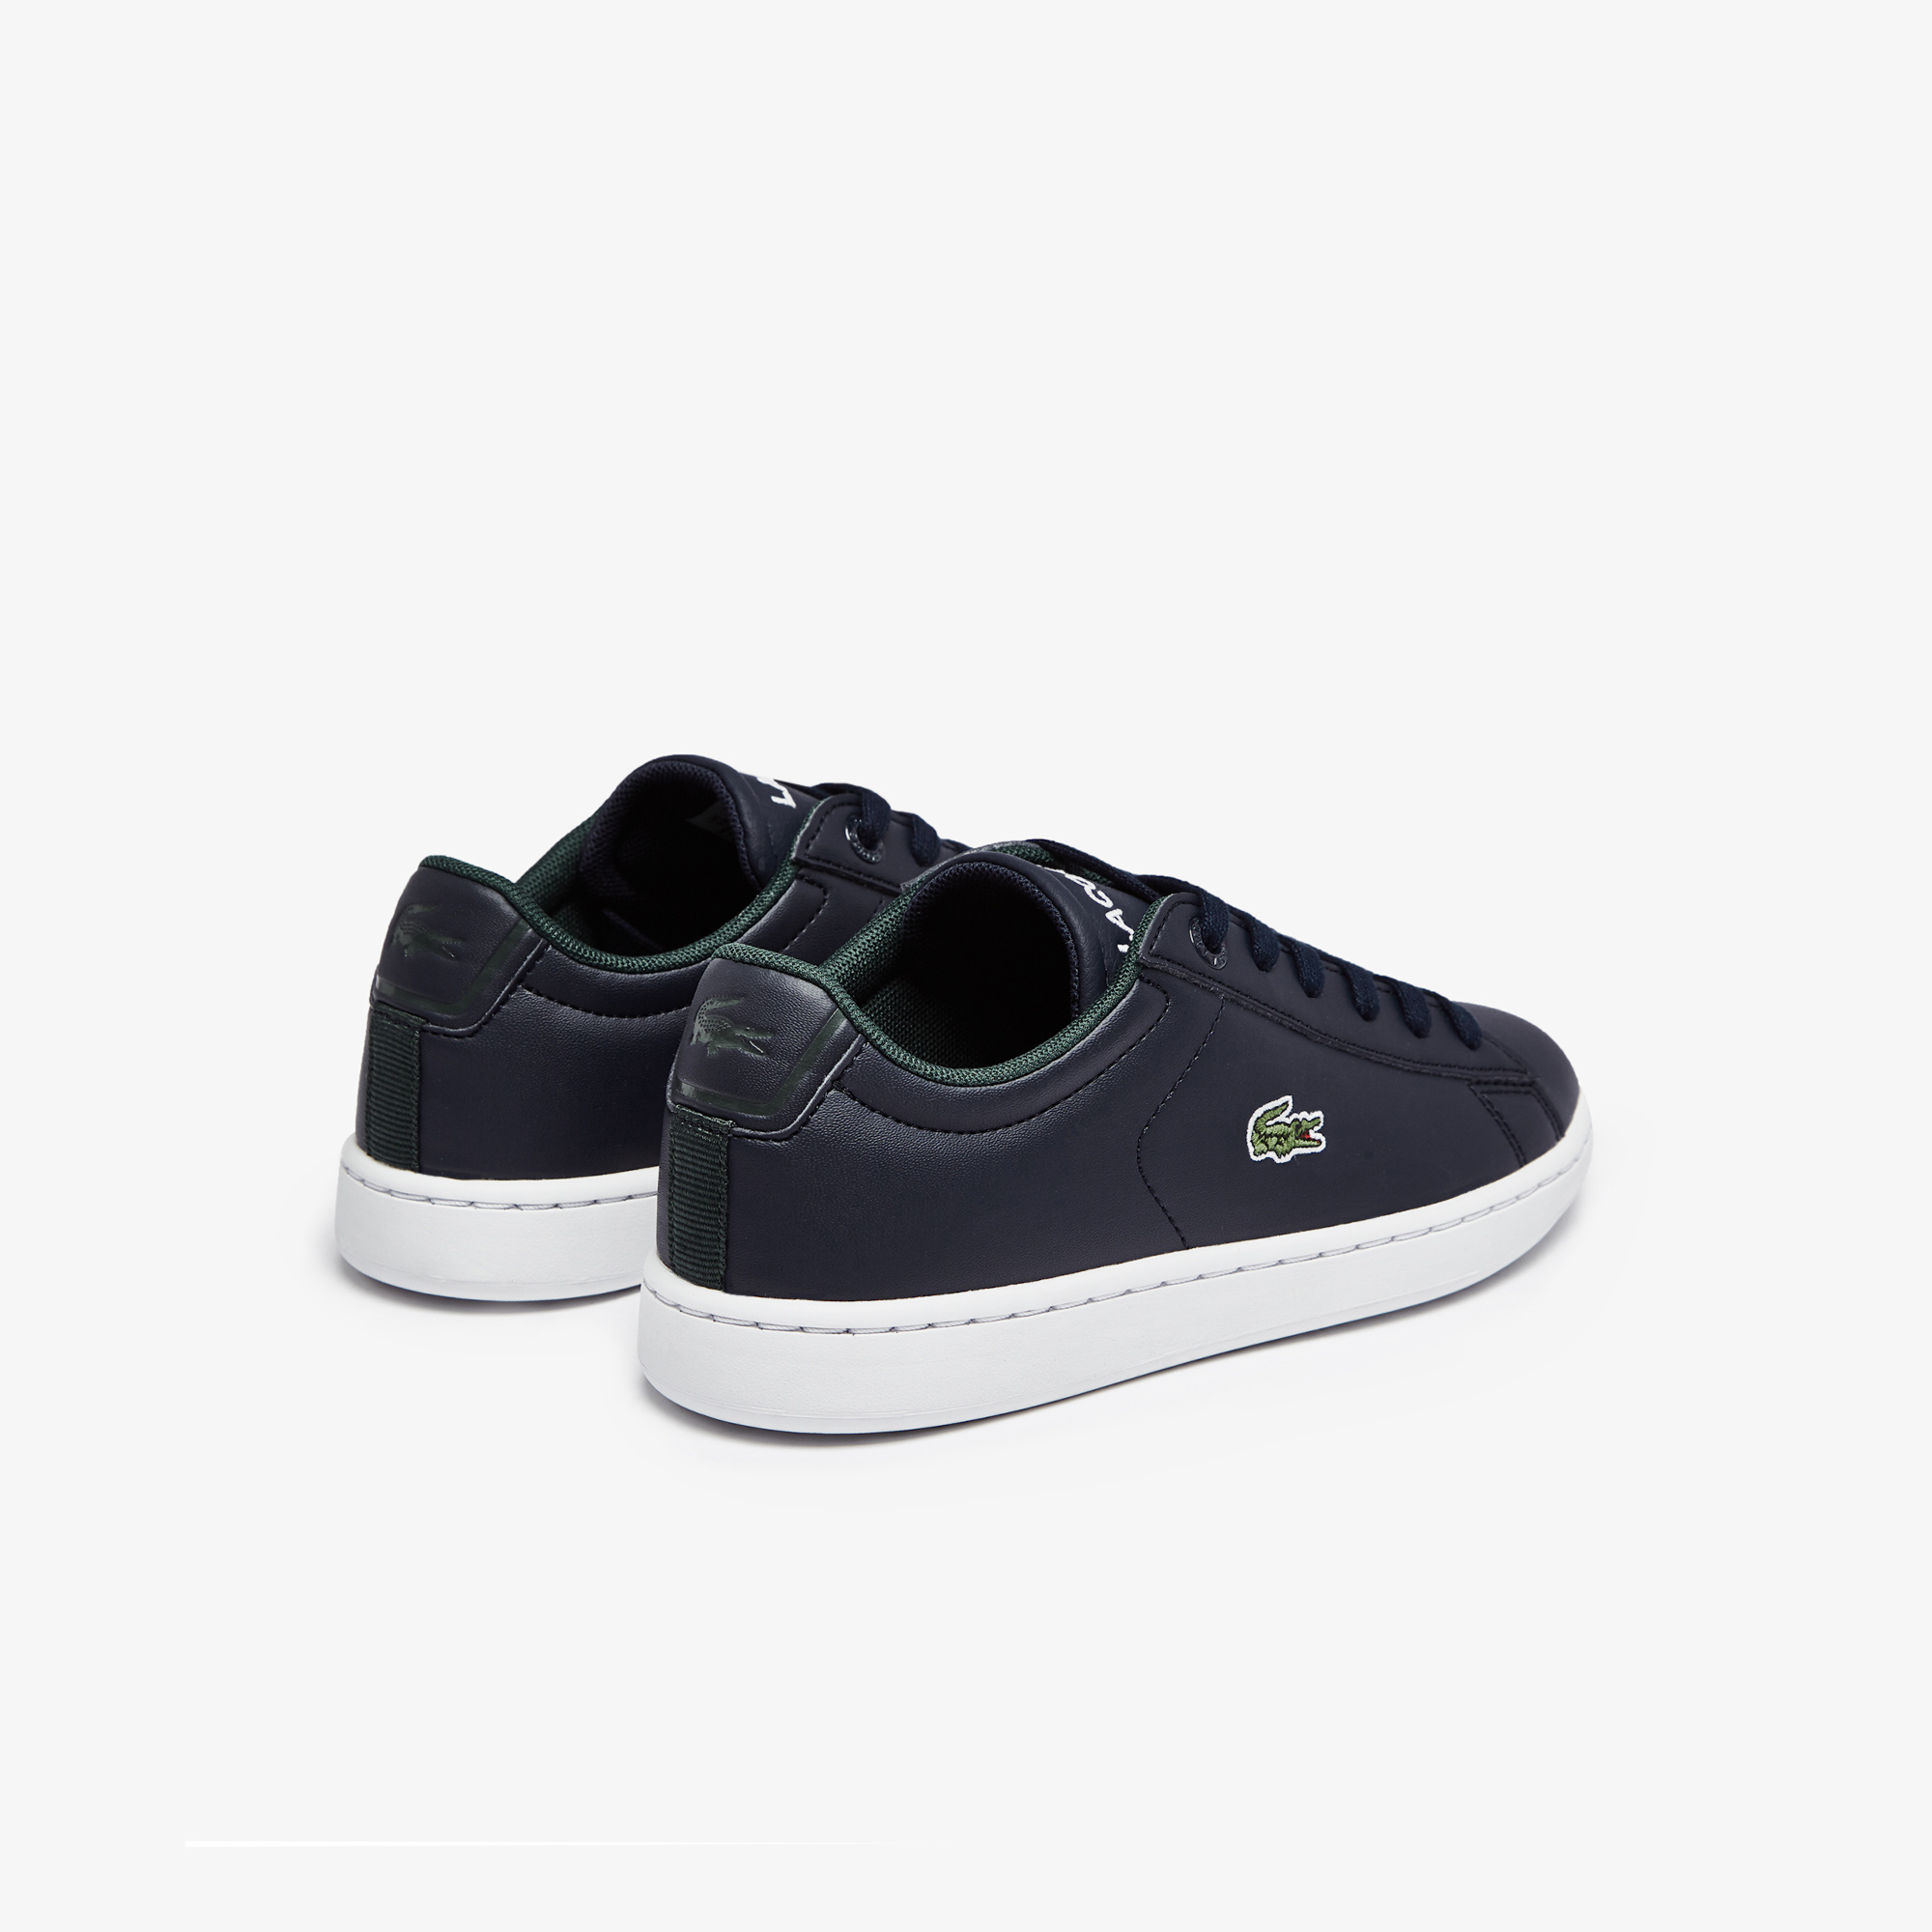 Lacoste Children's Carnaby Evo 0721 1 Suc Shoes